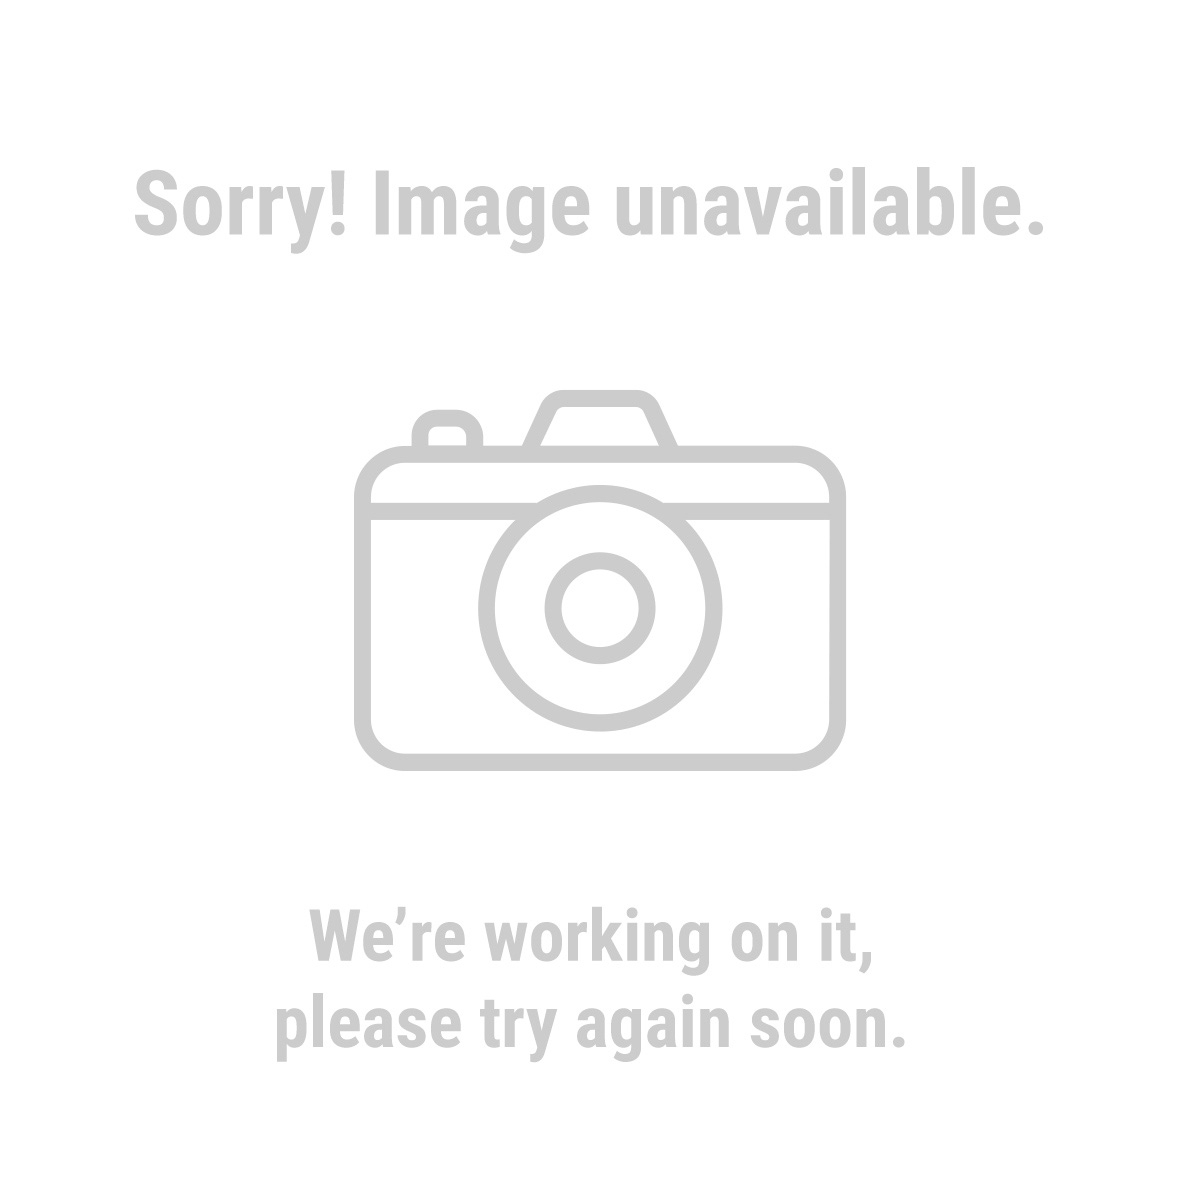 Storehouse® 67528 206 Piece Anchors and Screws for Wood